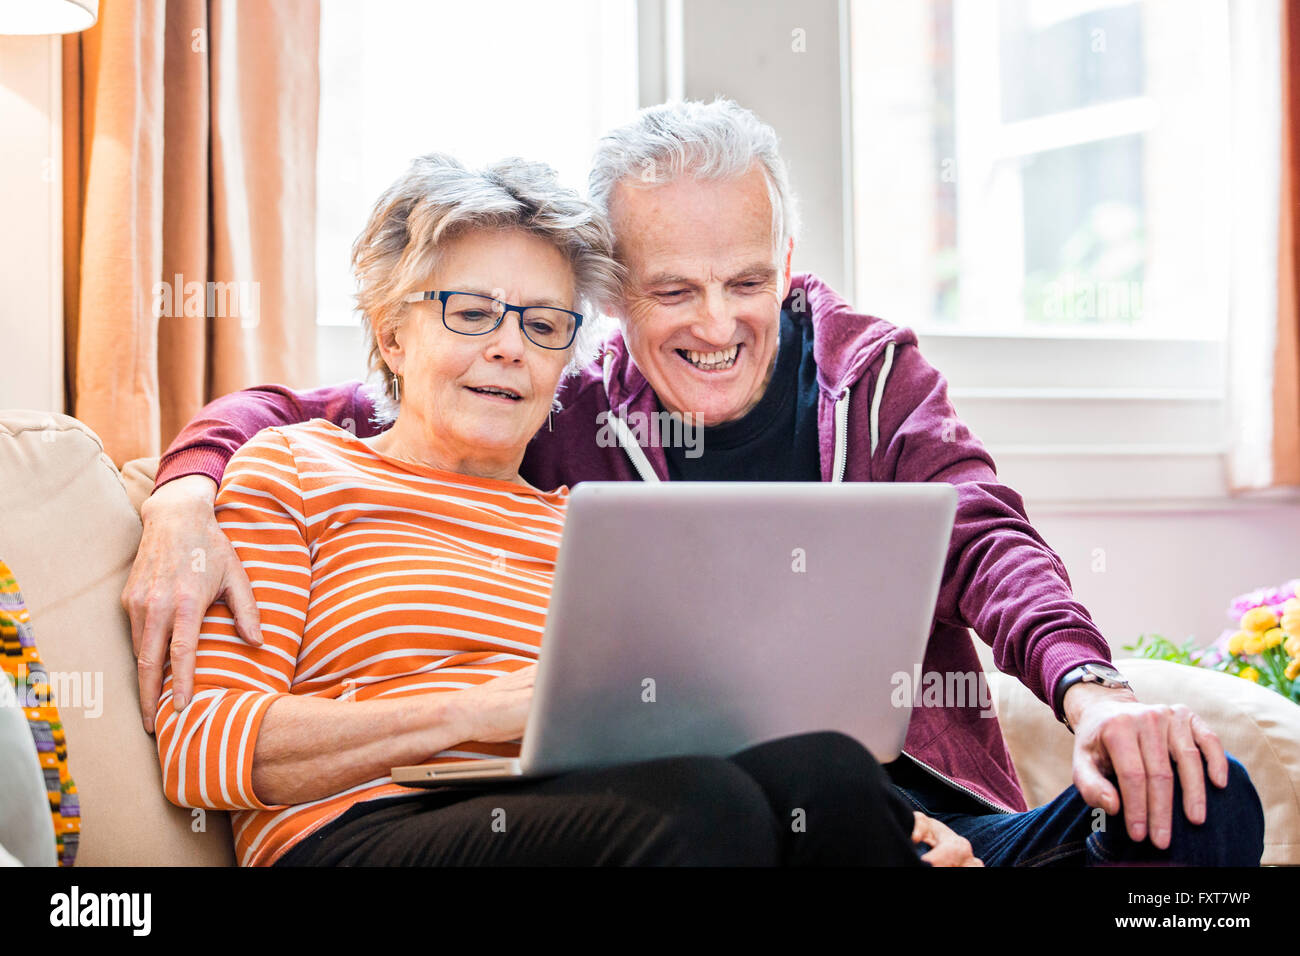 Senior couple on living room sofa looking at laptop - Stock Image